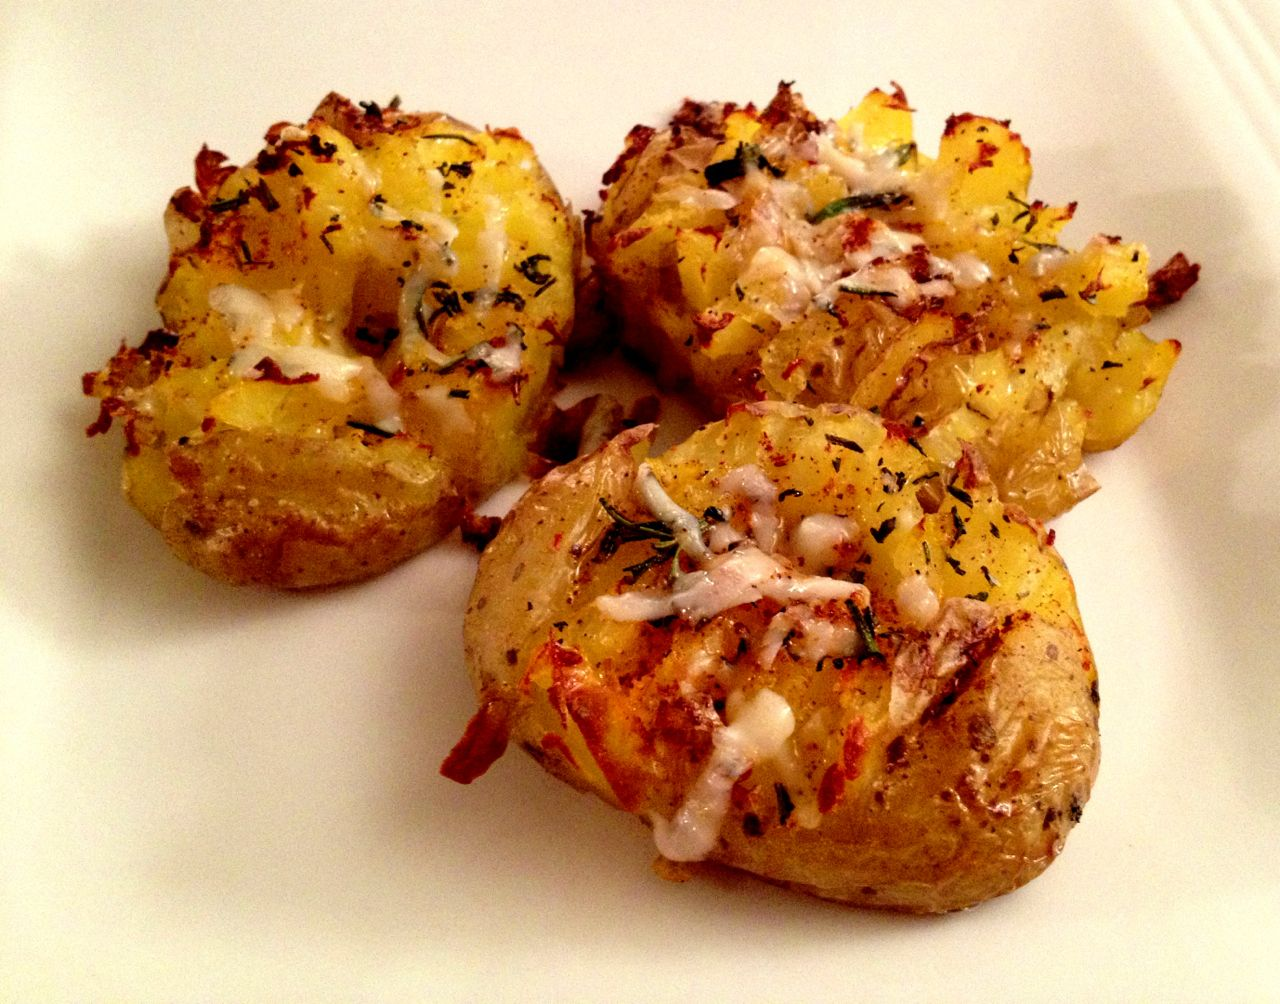 Smashed roasted potatoes with rosemary